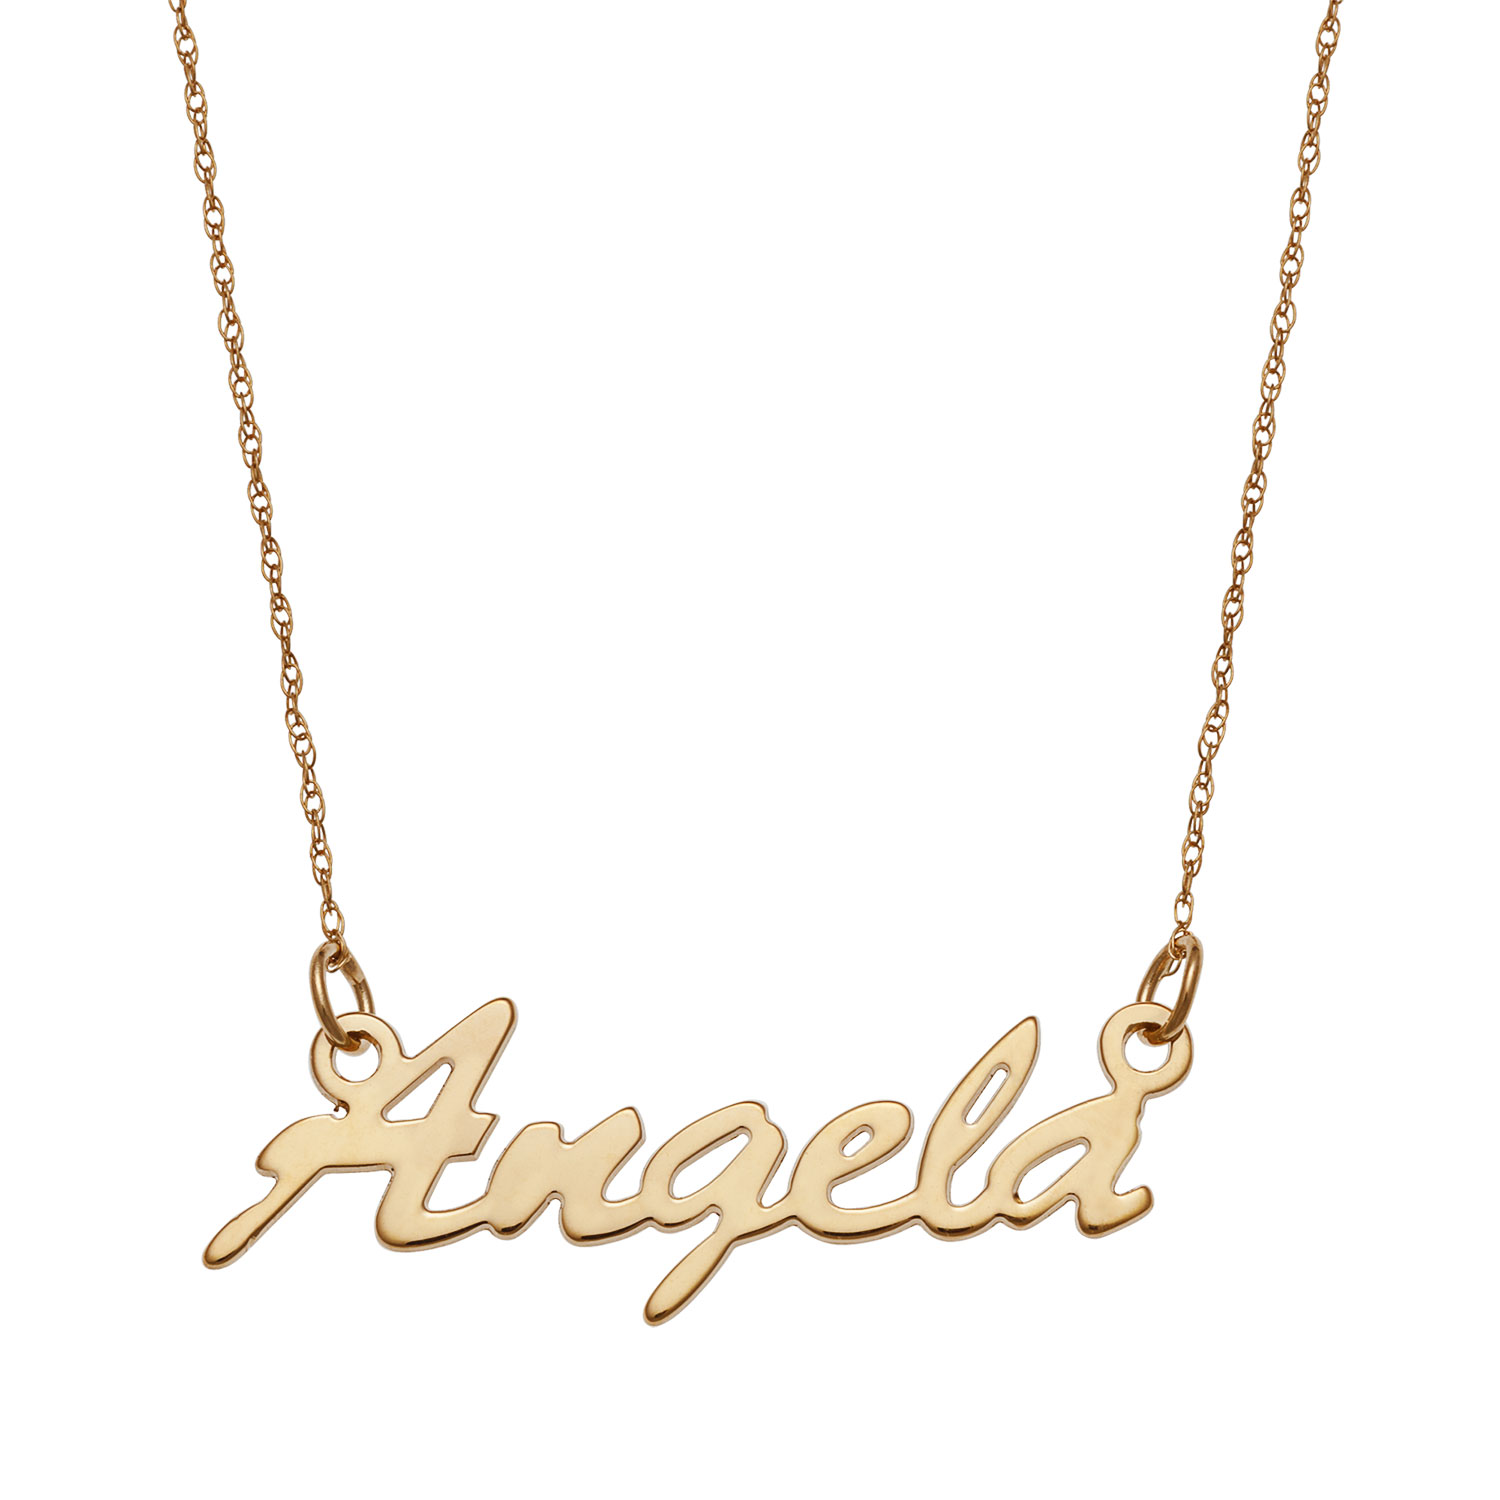 personalised made letters shop necklace jewellery australia in gevery name gold